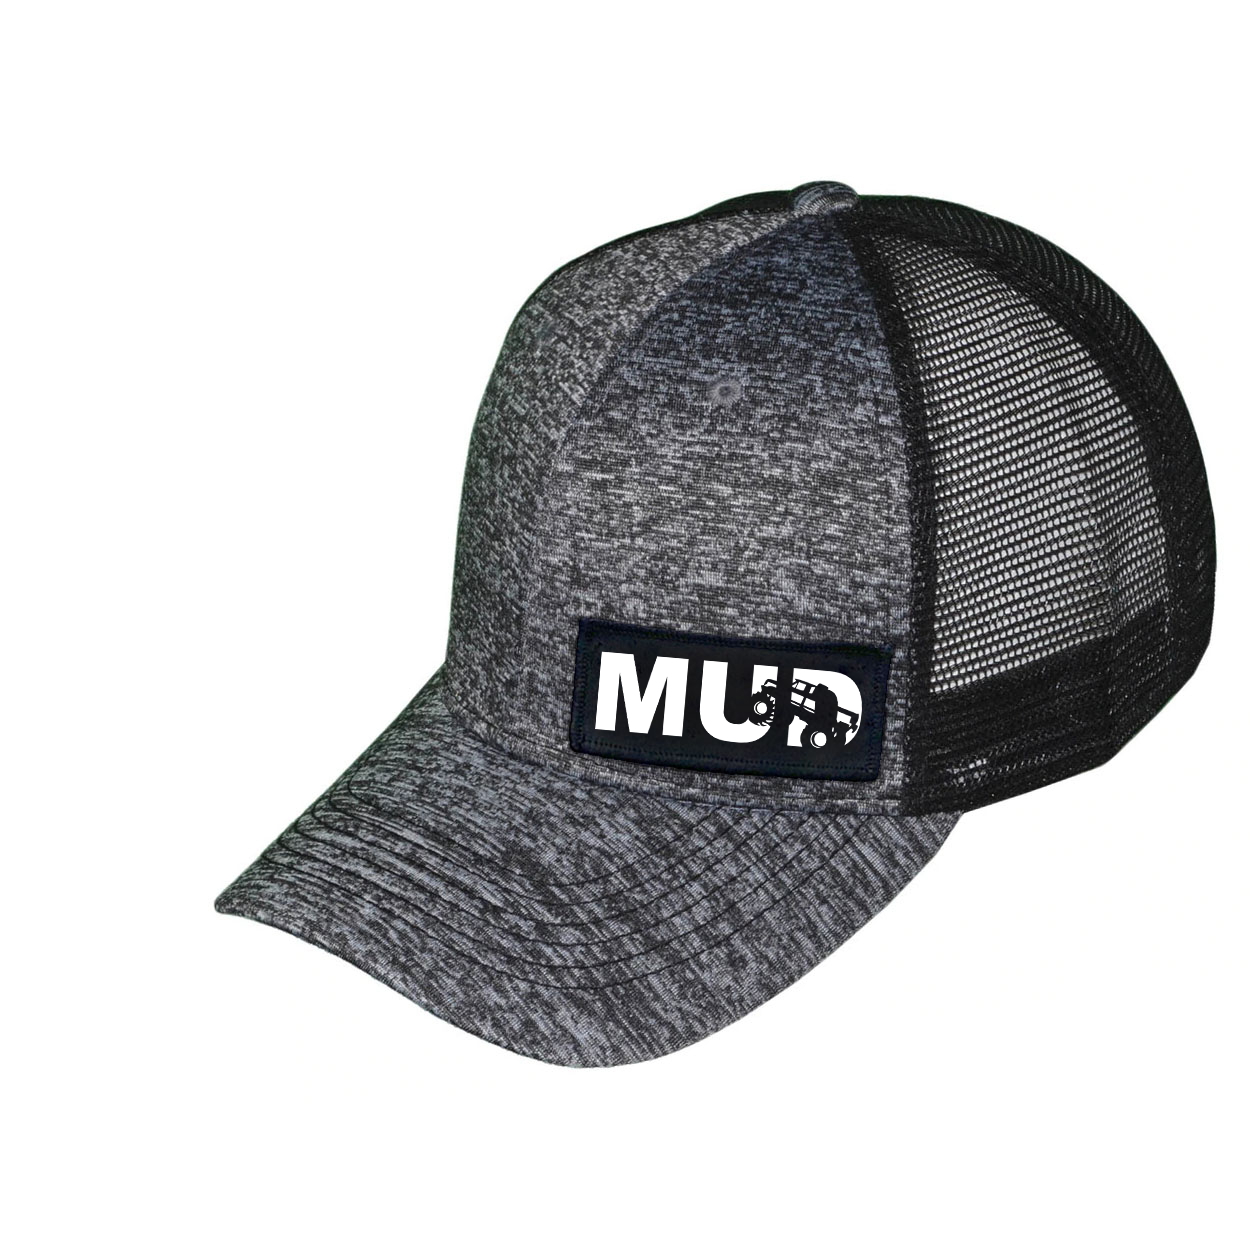 Mud Truck Logo Night Out Woven Patch Melange Snapback Trucker Hat Gray/Black (White Logo)